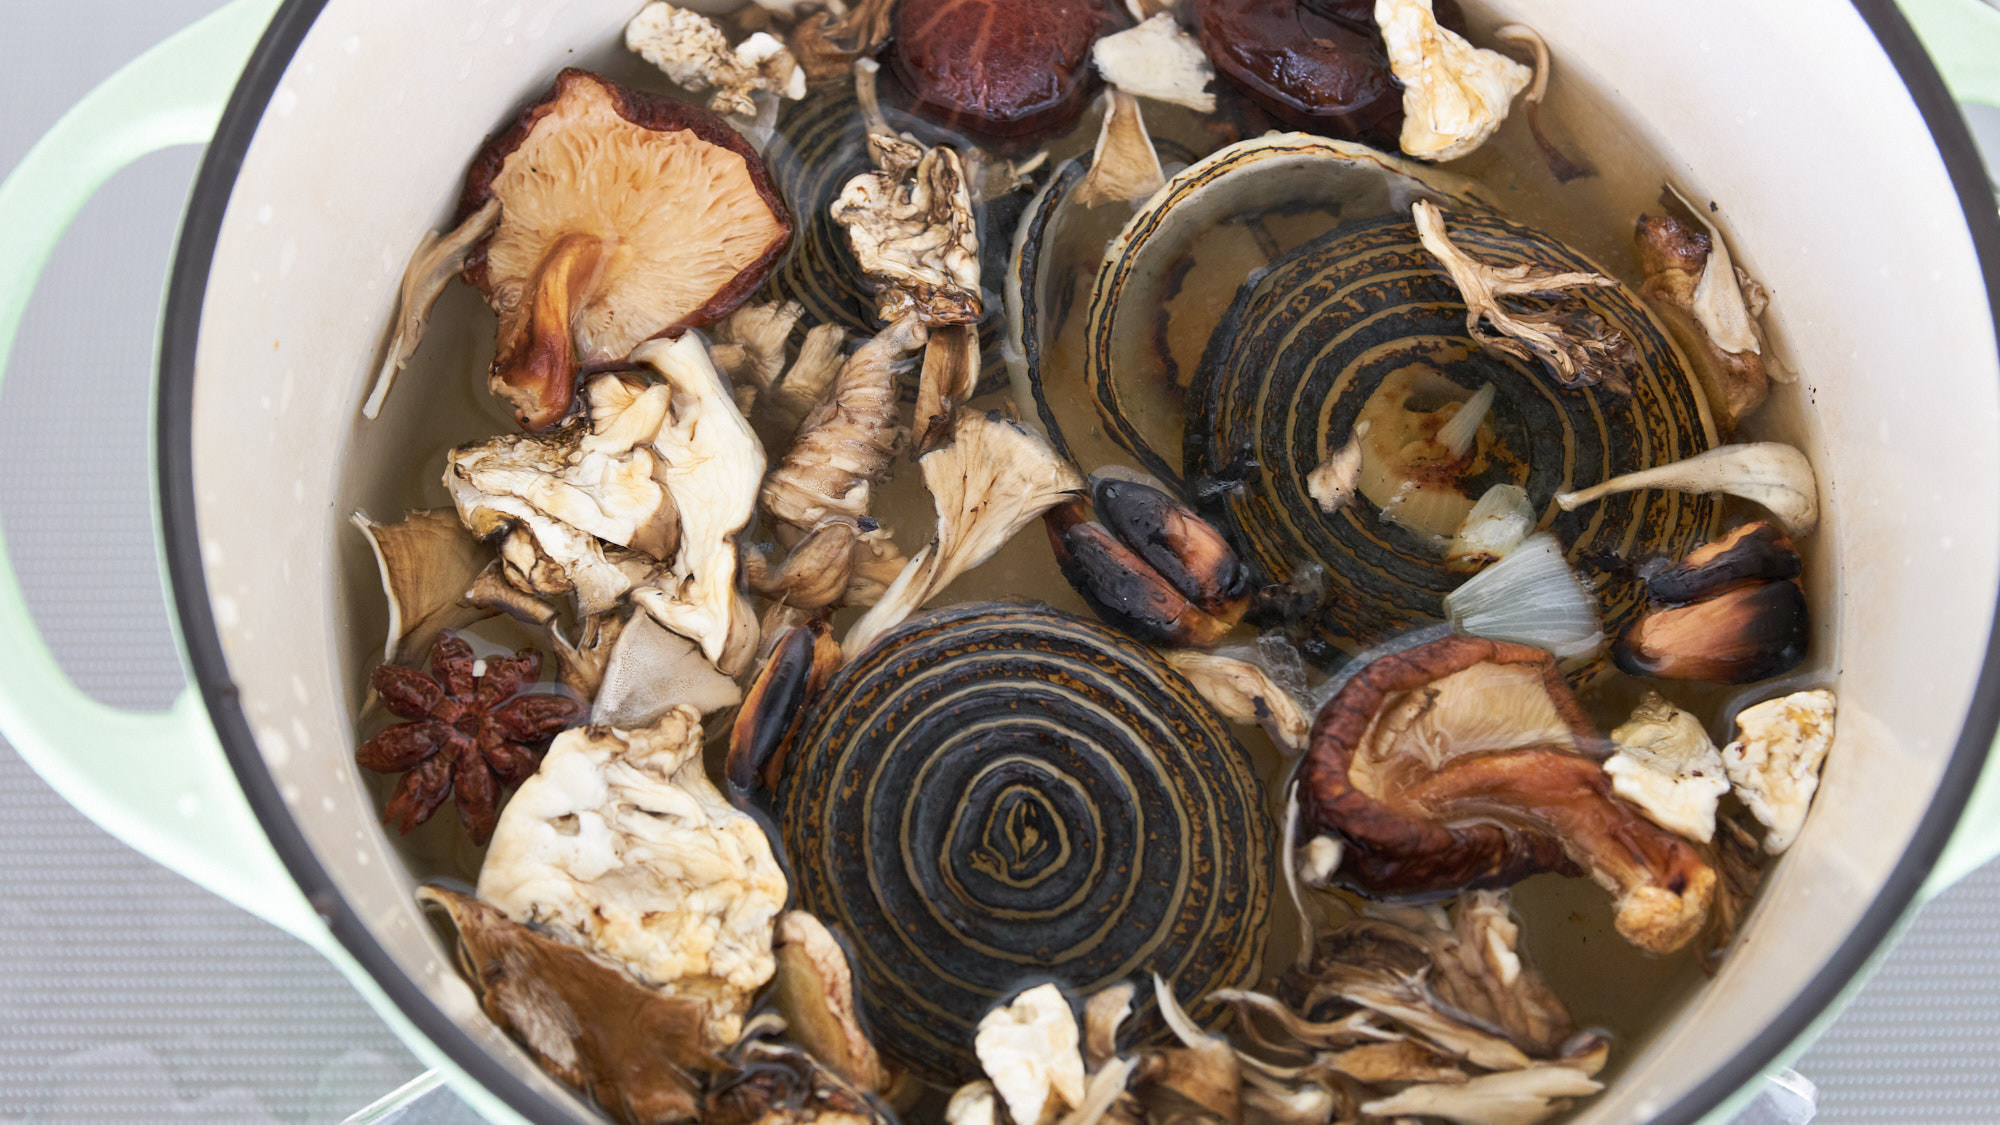 Dried shiitake and maitake mushrooms with charred aromatics and spices for making vegan pho broth.